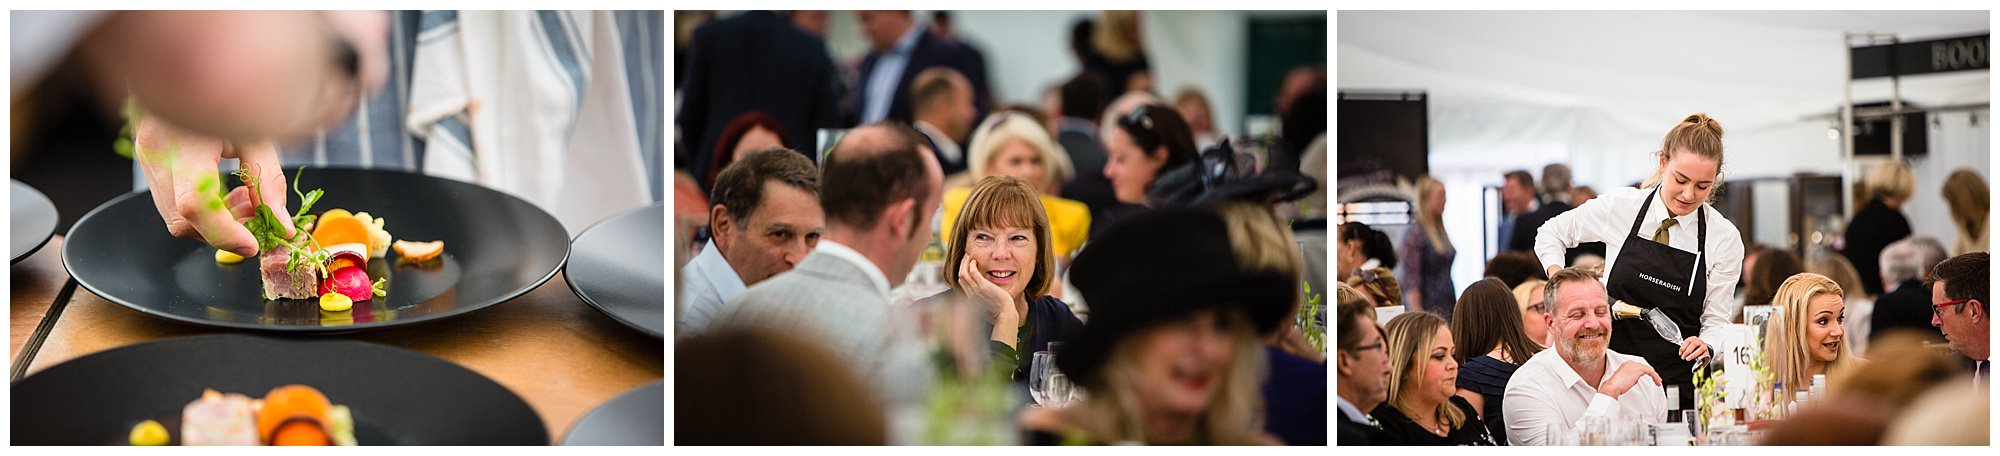 lady enjoying herself at the chester polo - charlotte giddings photography